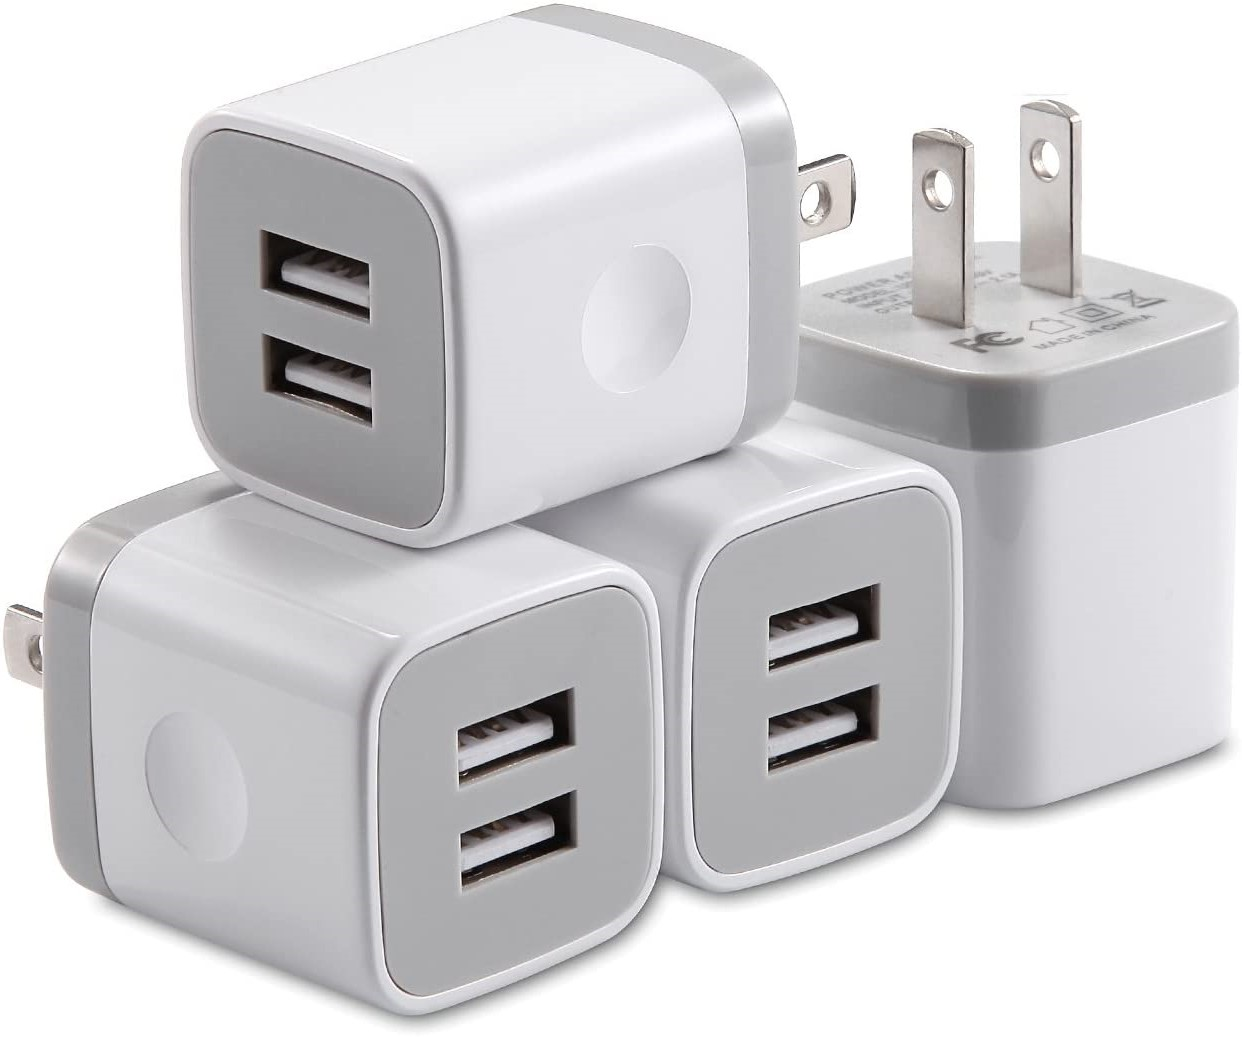 Edition Dual Port USB Wall Charger